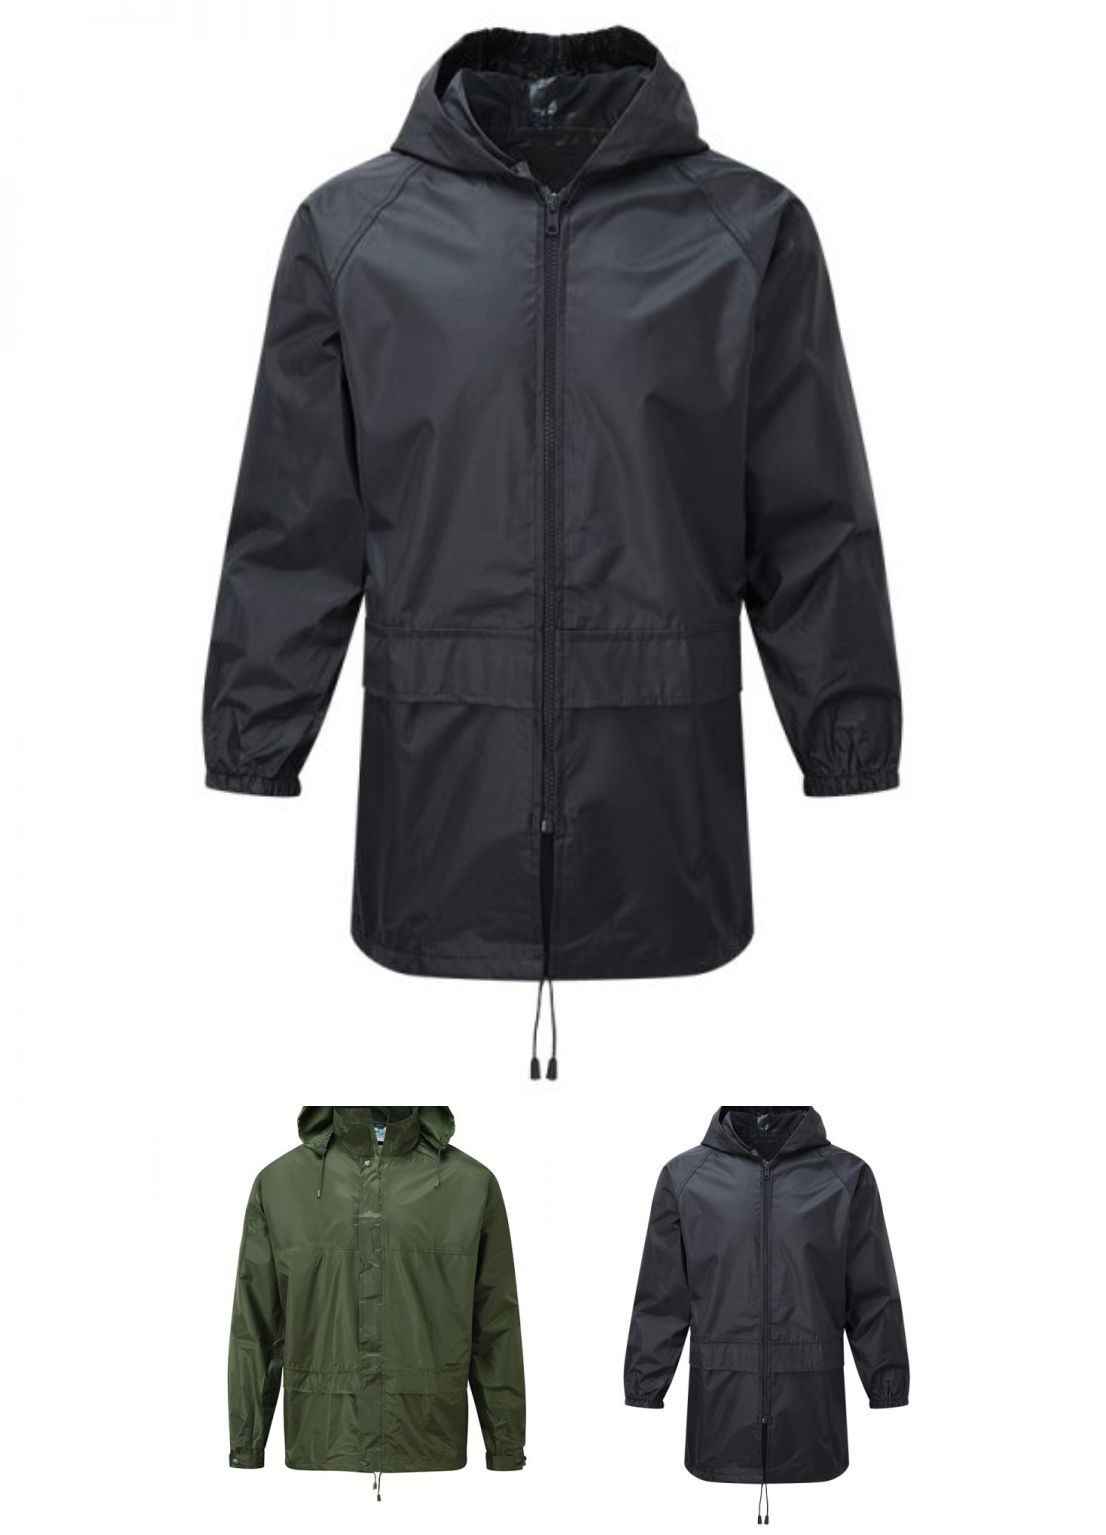 Blue Castle 217 Tornado Lightweight Waterproof jacket